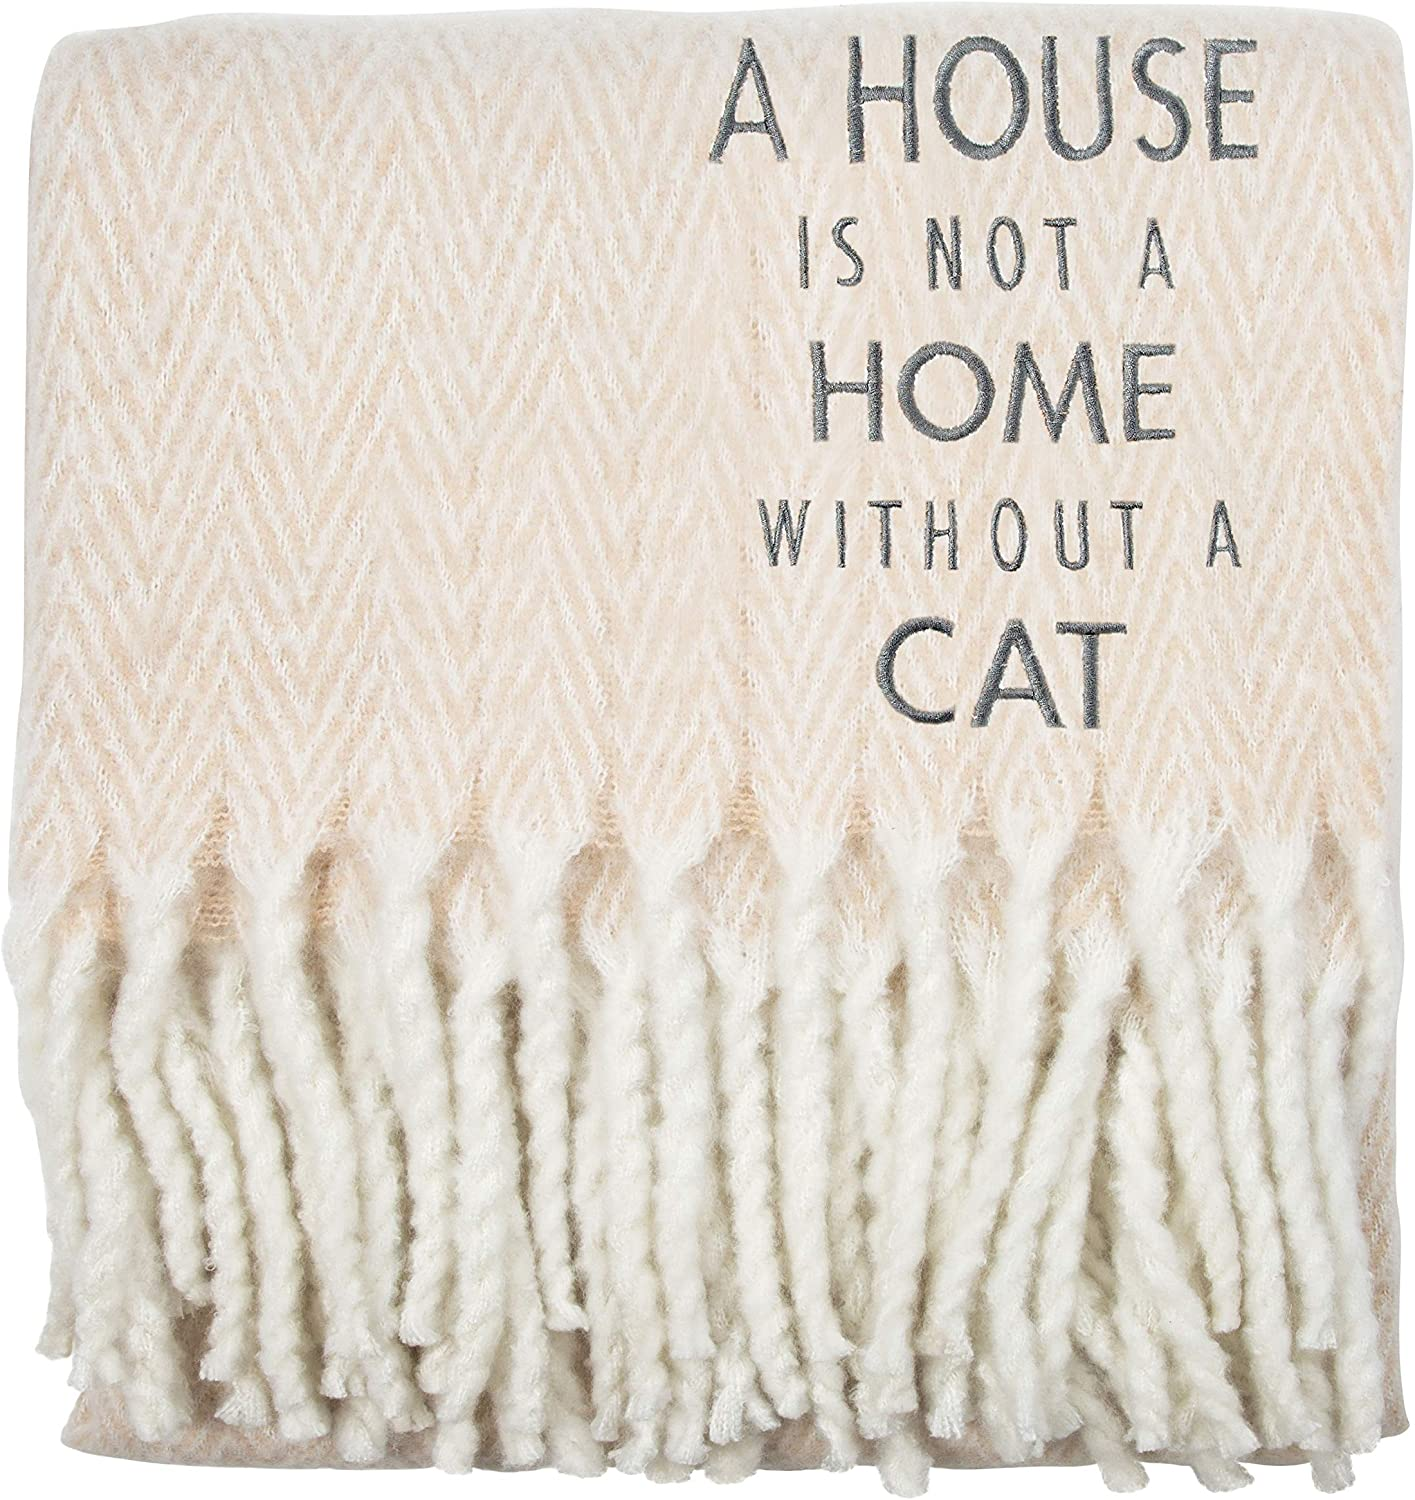 Pavilion Gift Company House is Not A Home Without A Cat-50x60 Super Soft Herringbone Chevron Tassel Throw Blanket, Tan